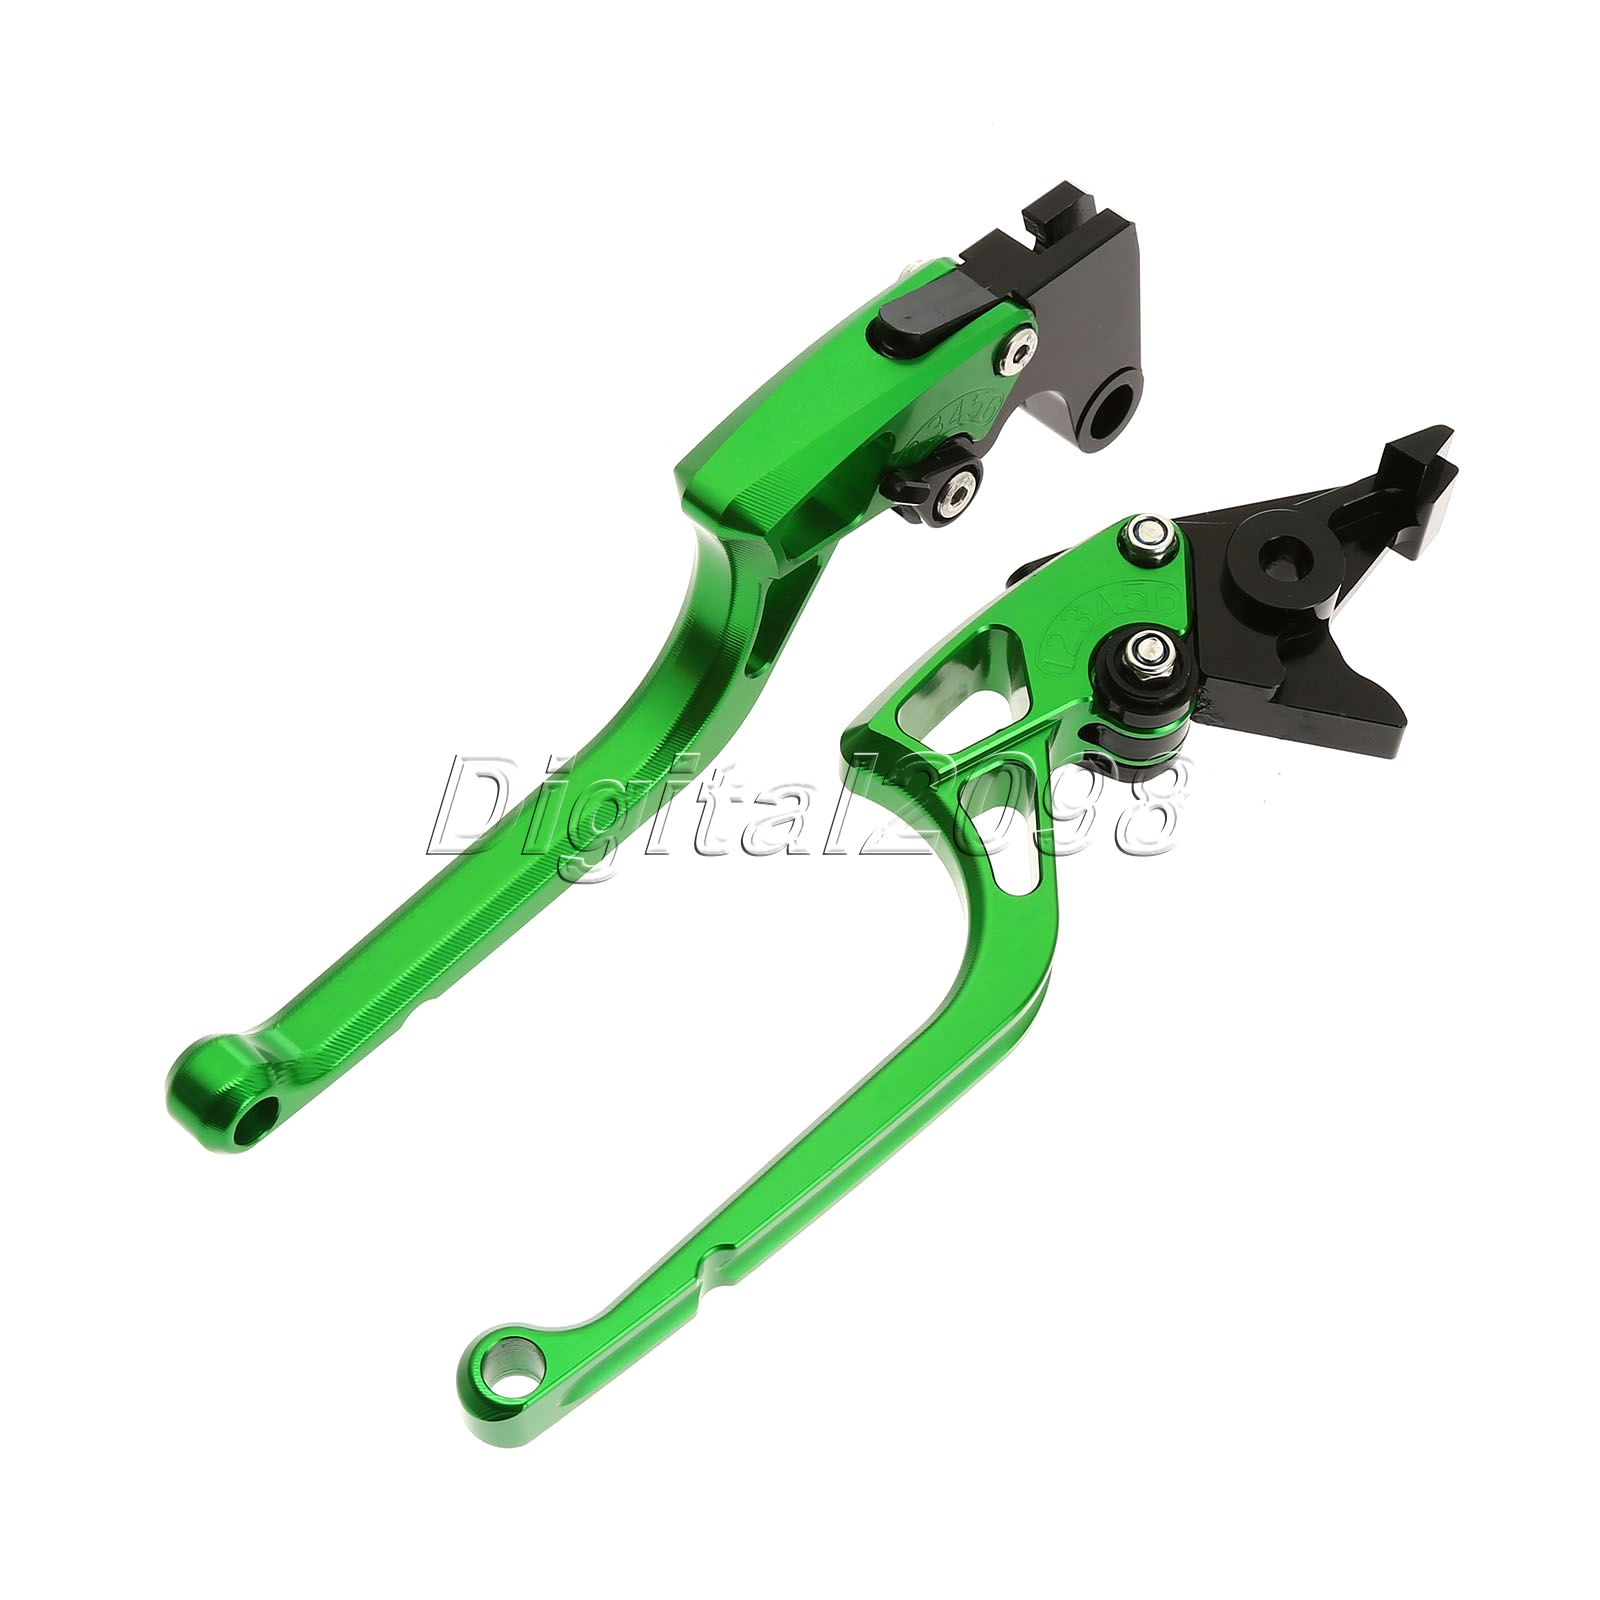 For Honda X-11 1999-2002 (F-XX/H-626) Motorcycle CNC Adjustable Brake Clutch Levers 6 Positions New Motorbike Modification Parts 2016 new style 3d short cnc adjustable brake clutch lever for honda x 11 99 02 f xx h 626 motorbike motorcycle brake levers